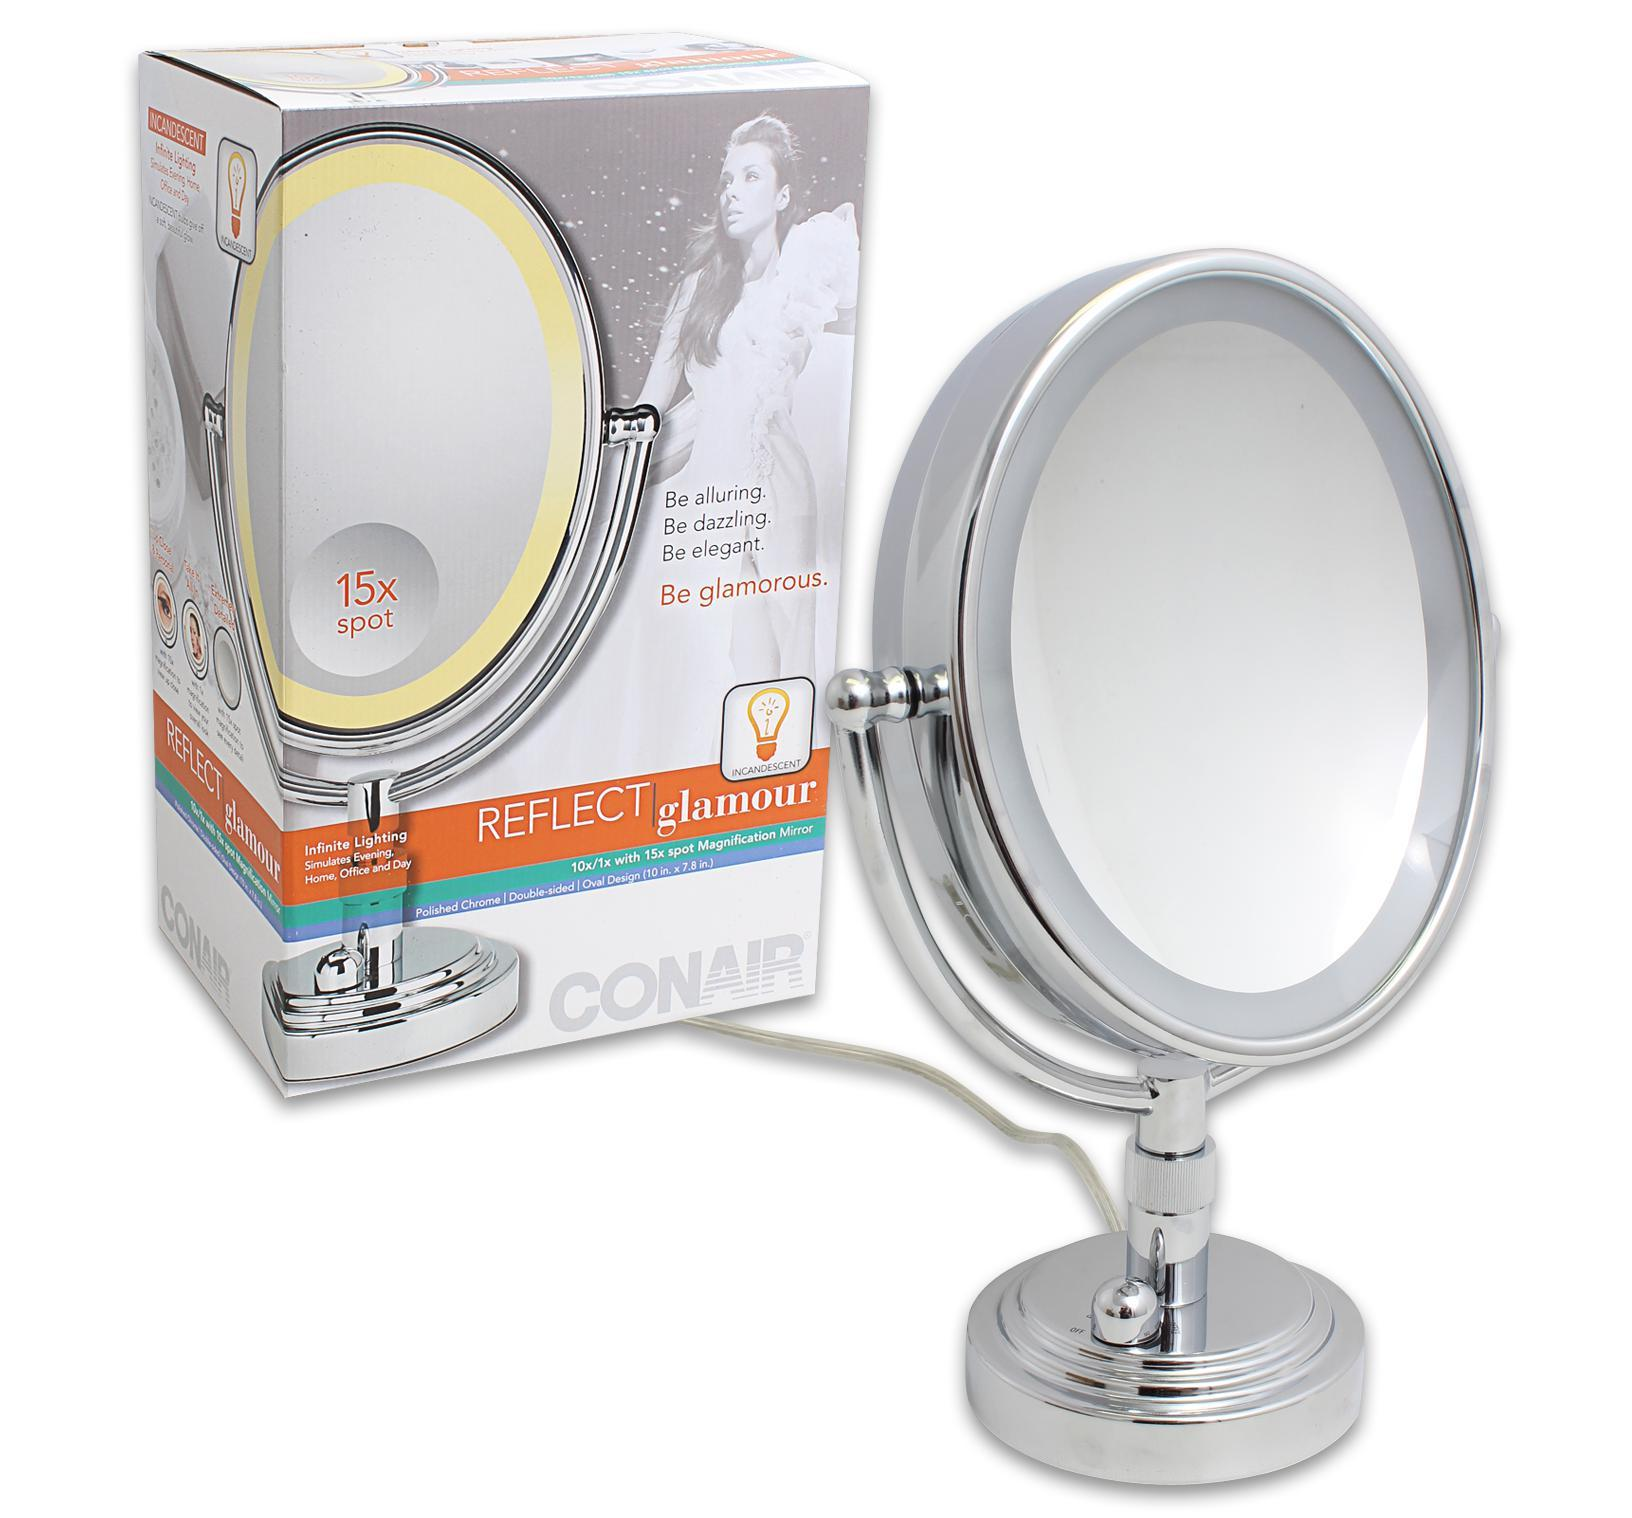 Lighted Vanity Mirror Conair : Conair Vanity Mirror 10x7.8